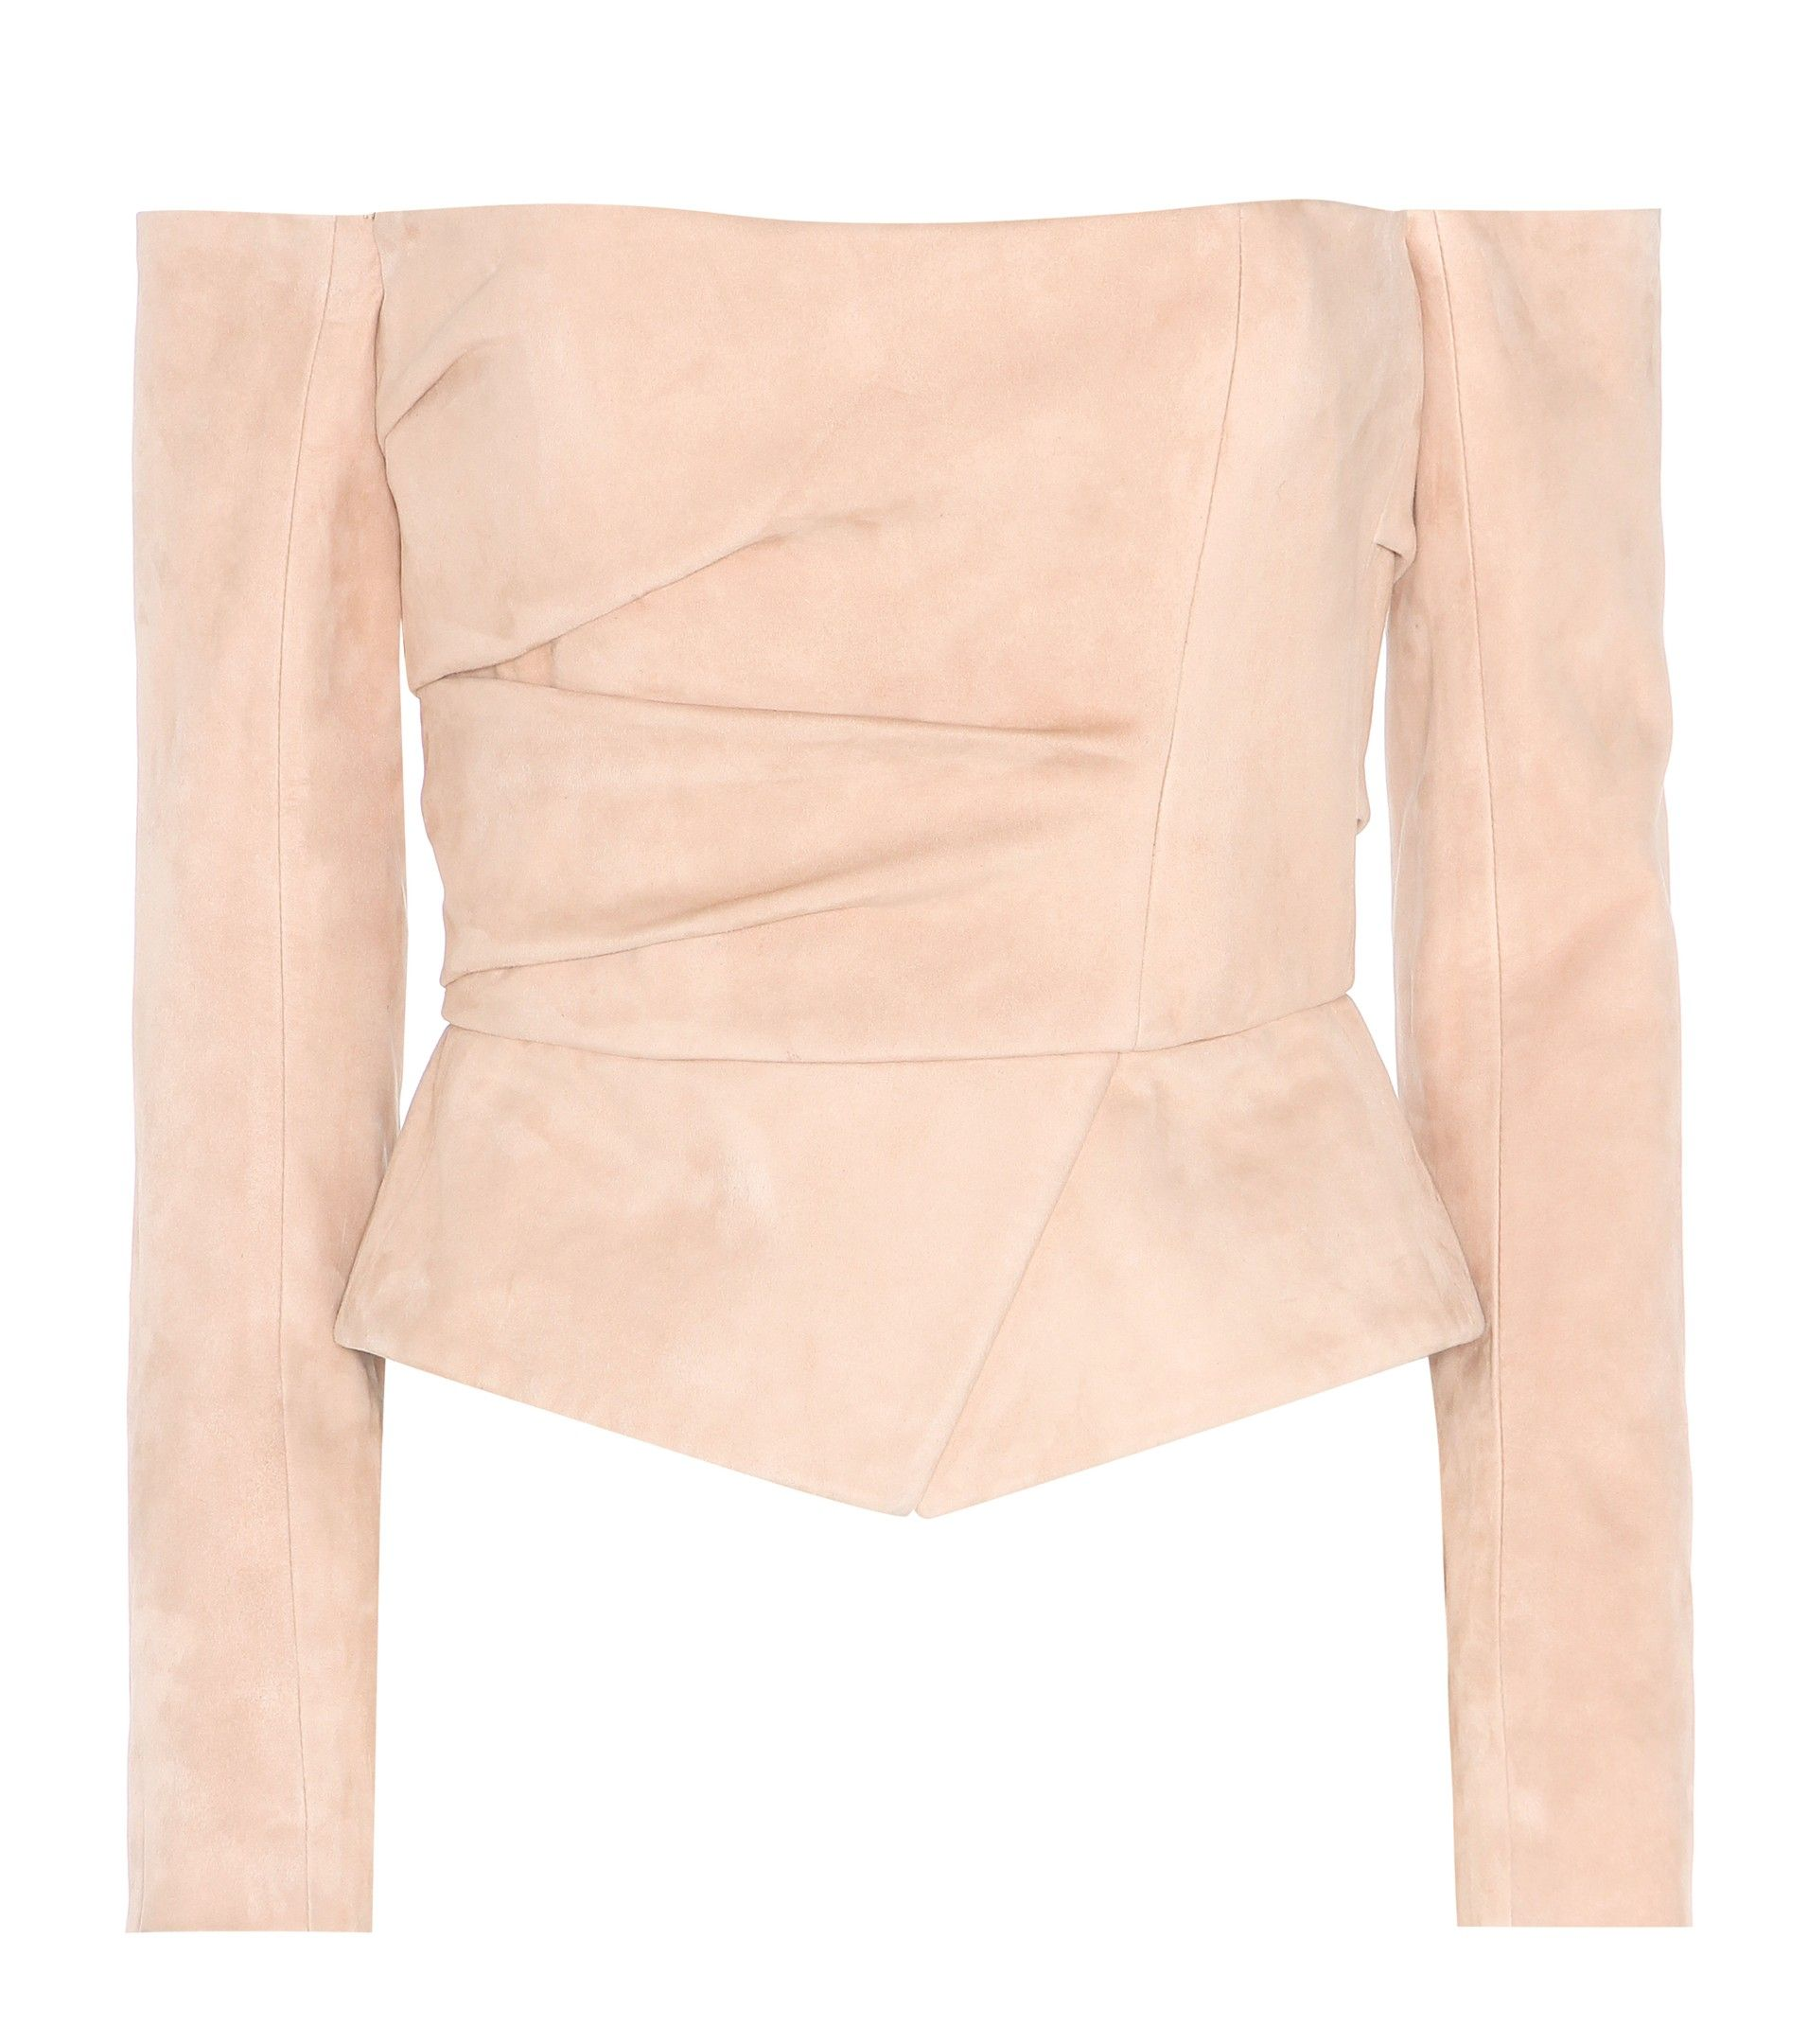 mytheresa.com - Leather top - Luxury Fashion for Women / Designer clothing, shoes, bags